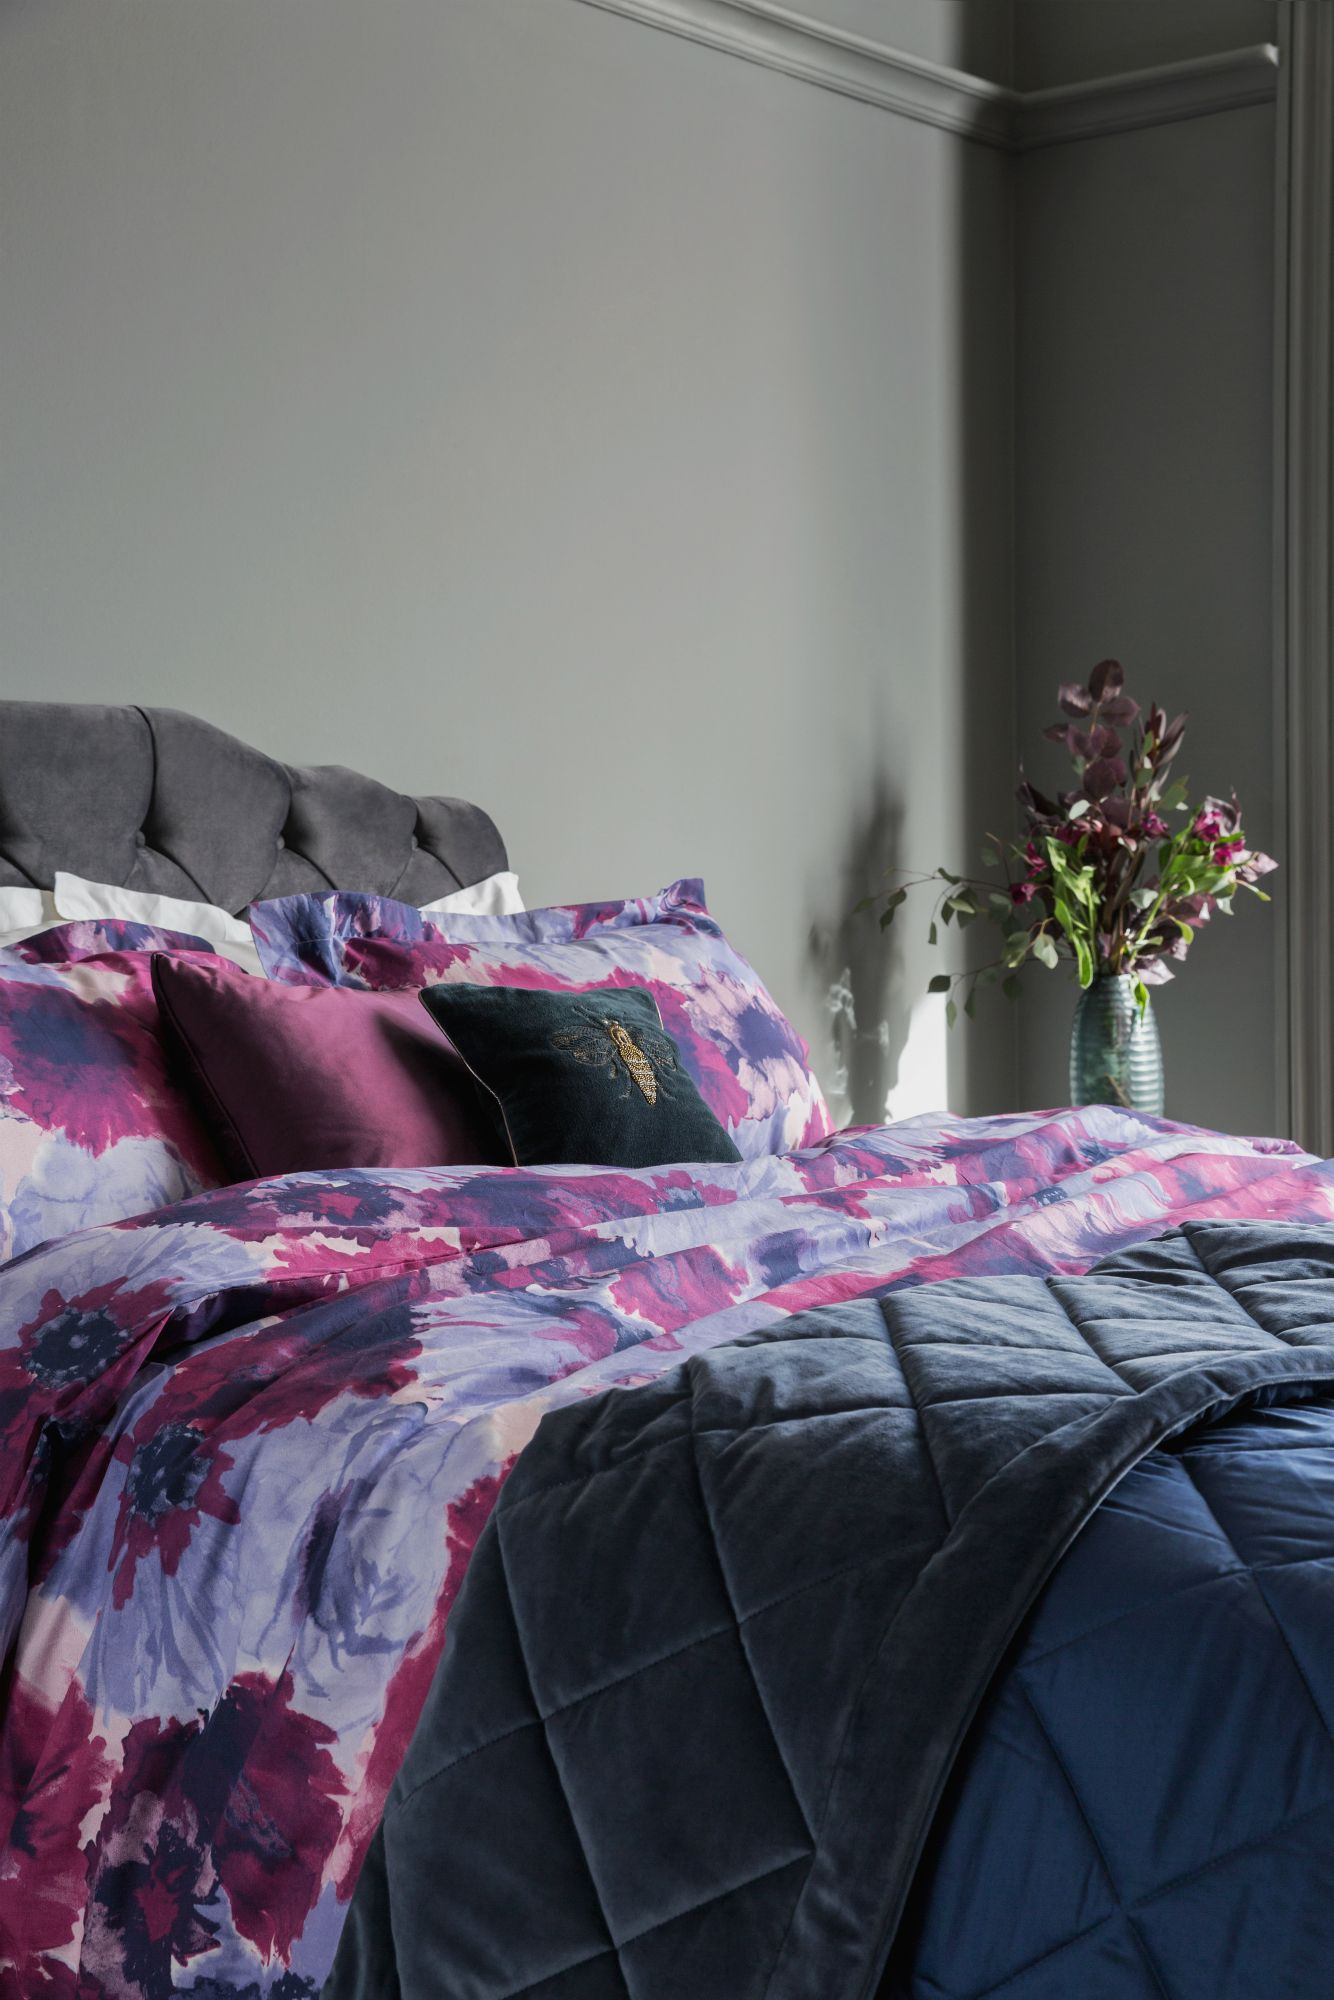 Purple Bedding Mixed With Dark Blue Accessories And Grey Walls